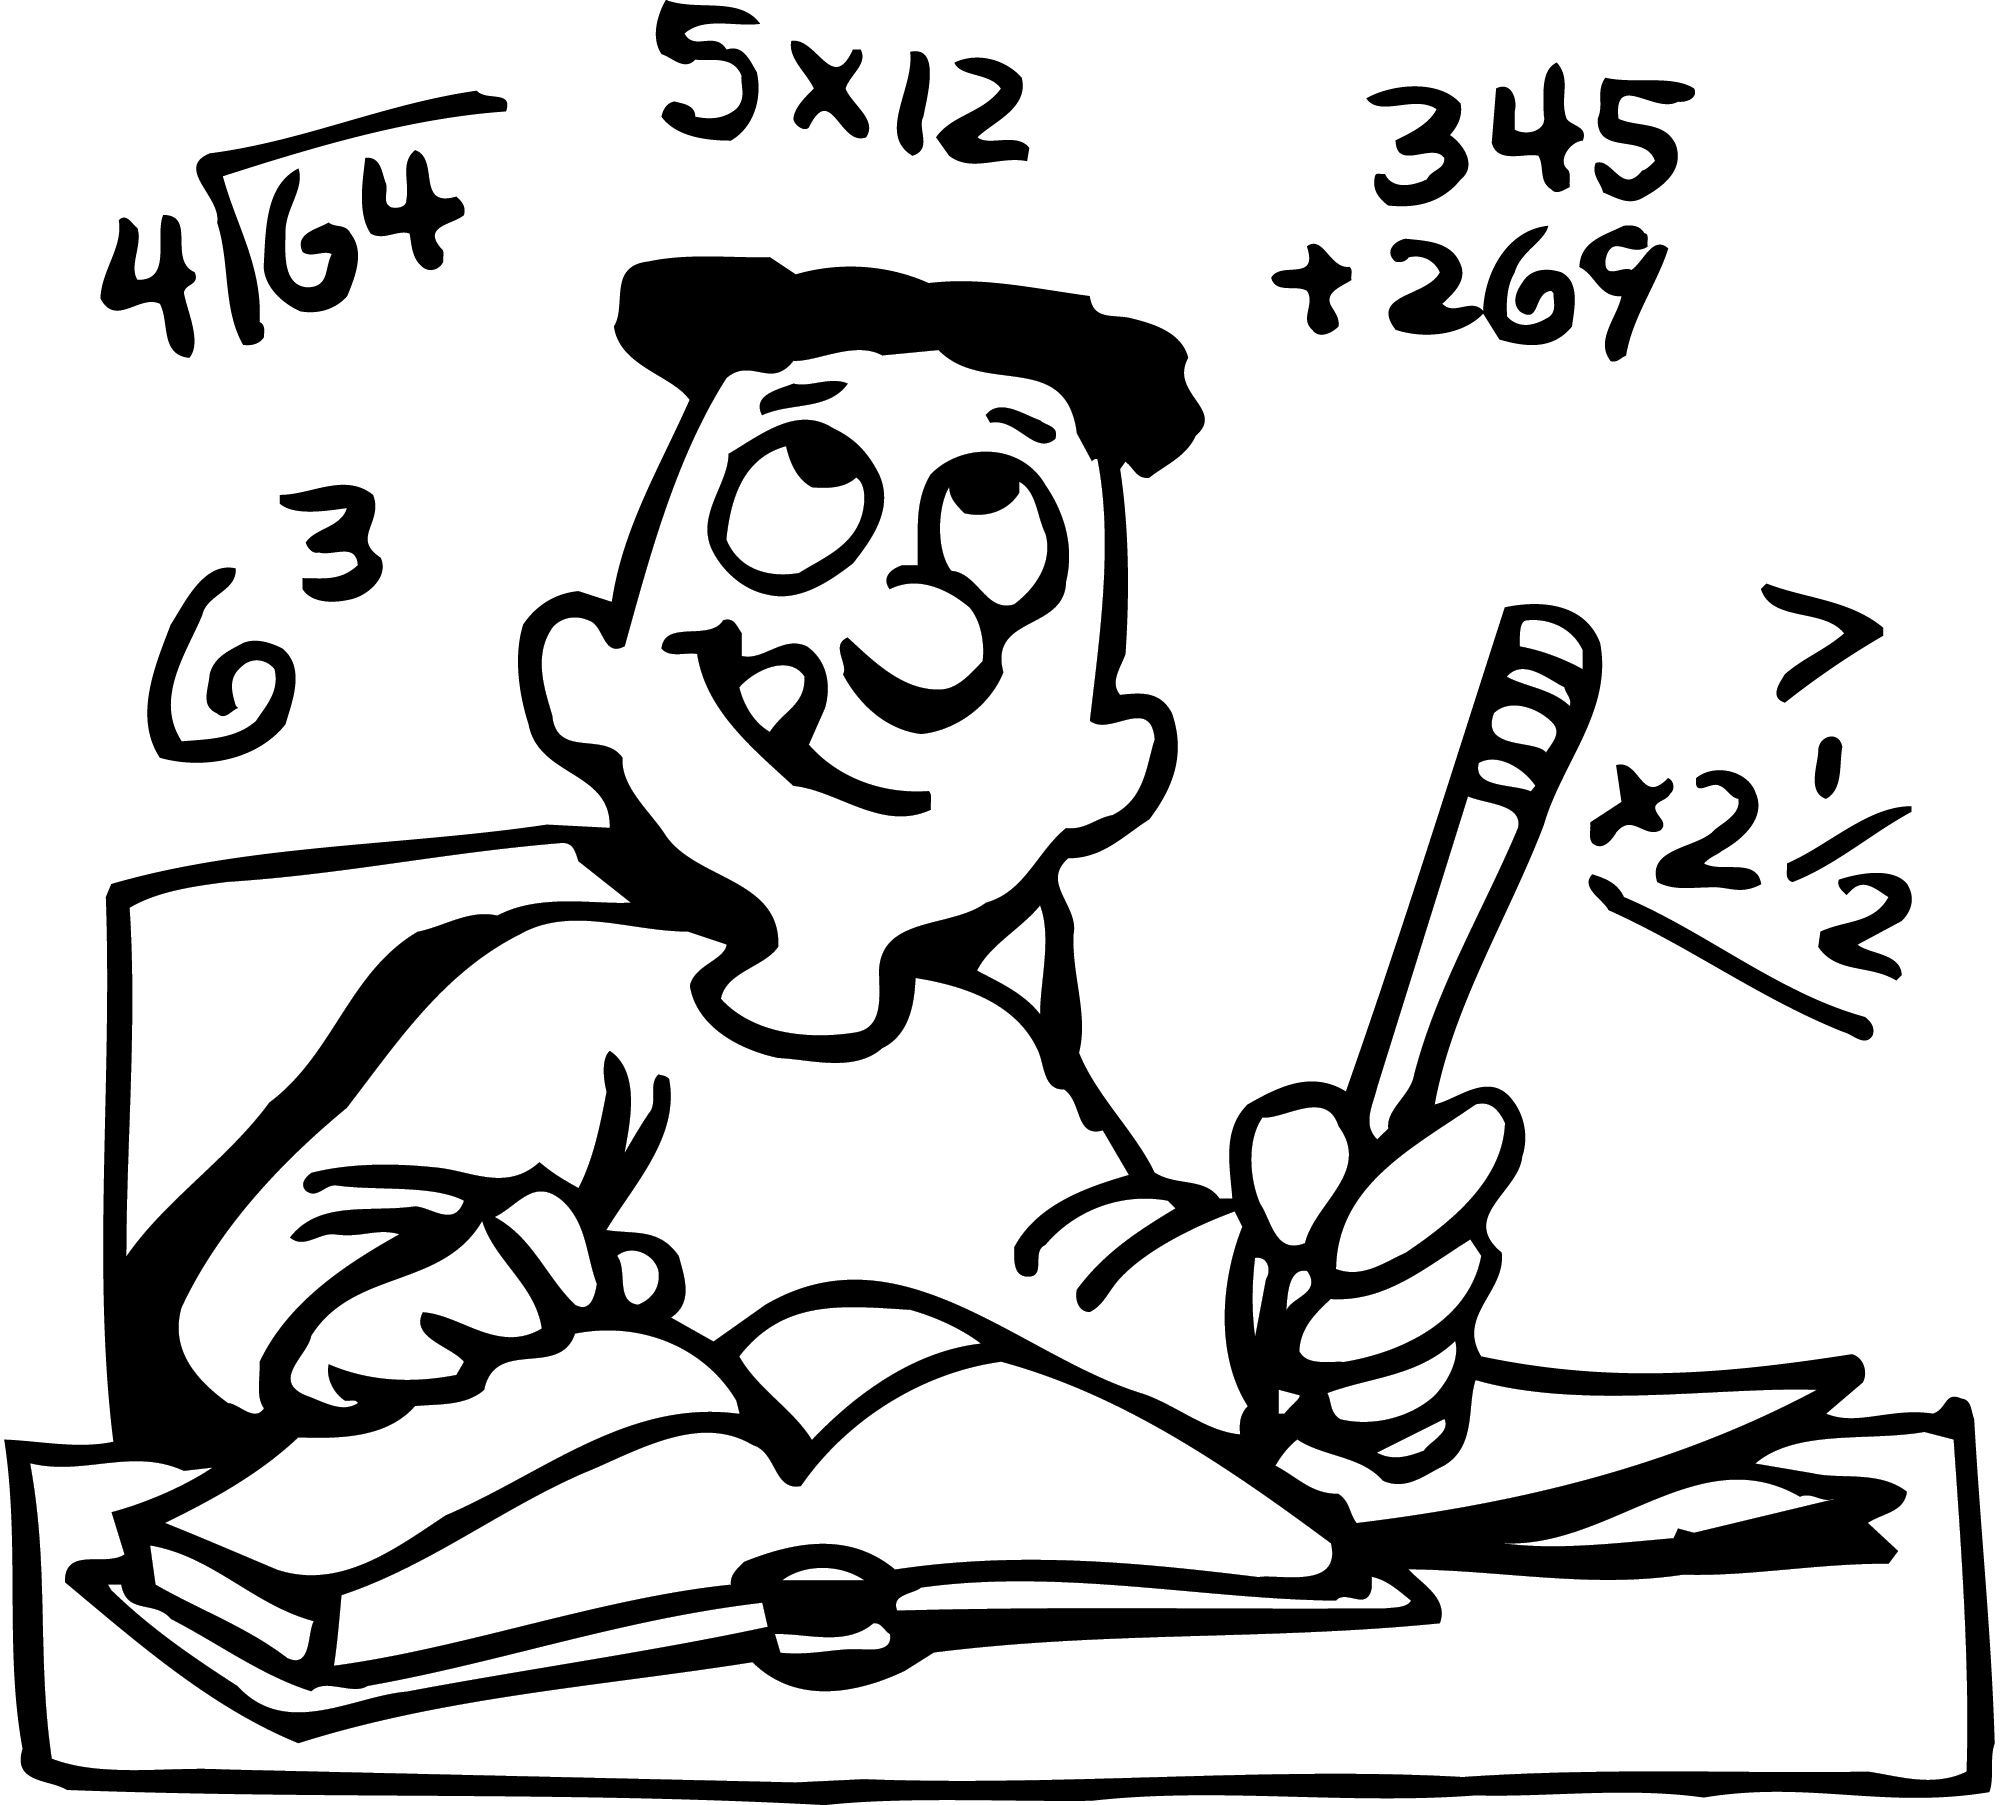 math homework clipart.